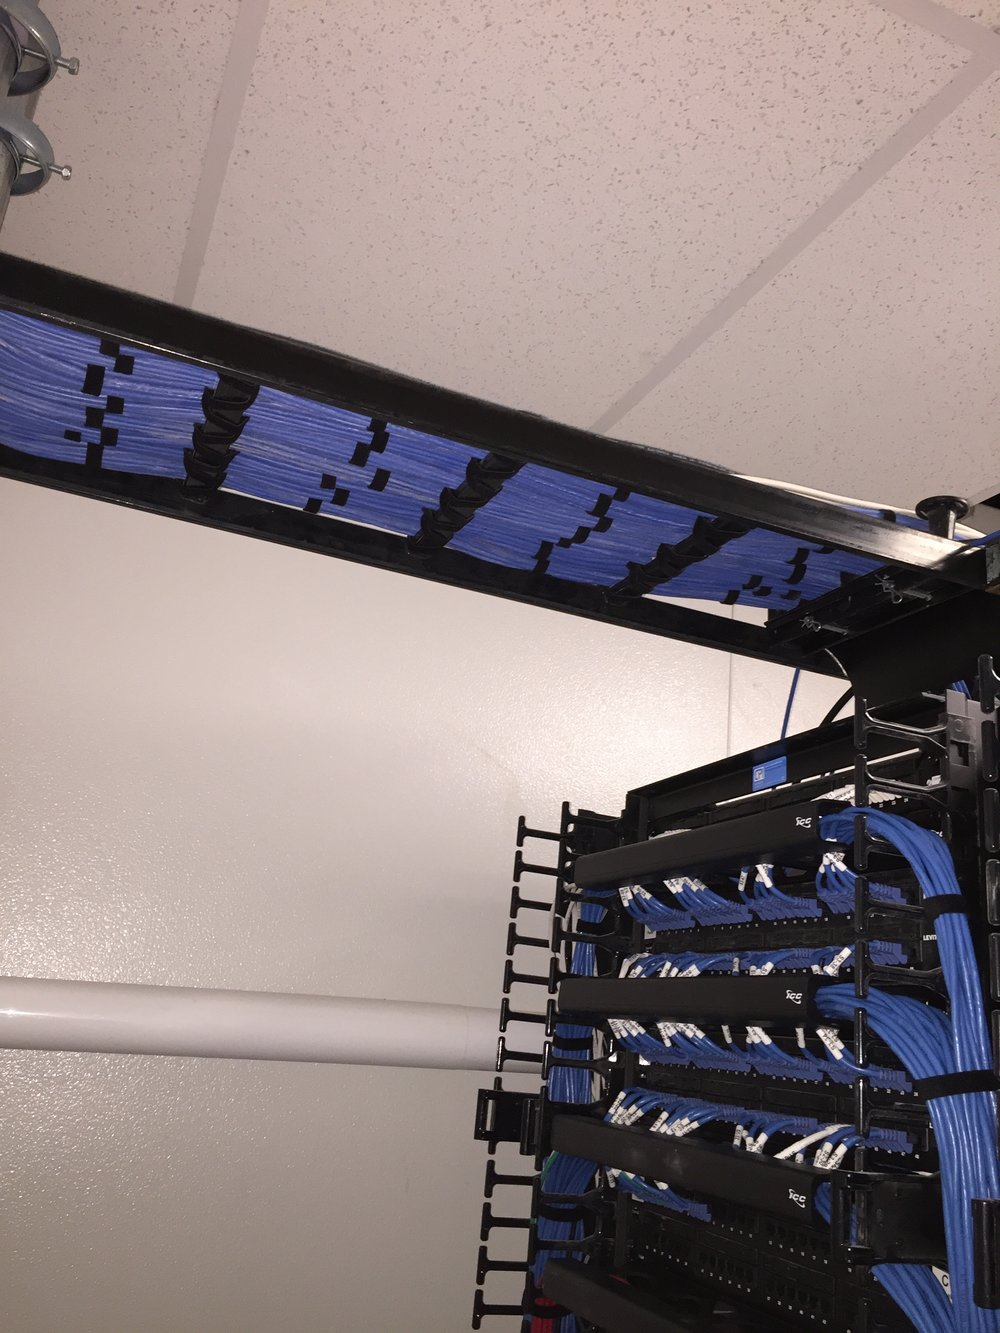 Ethernet Cable Routed into IT Rack